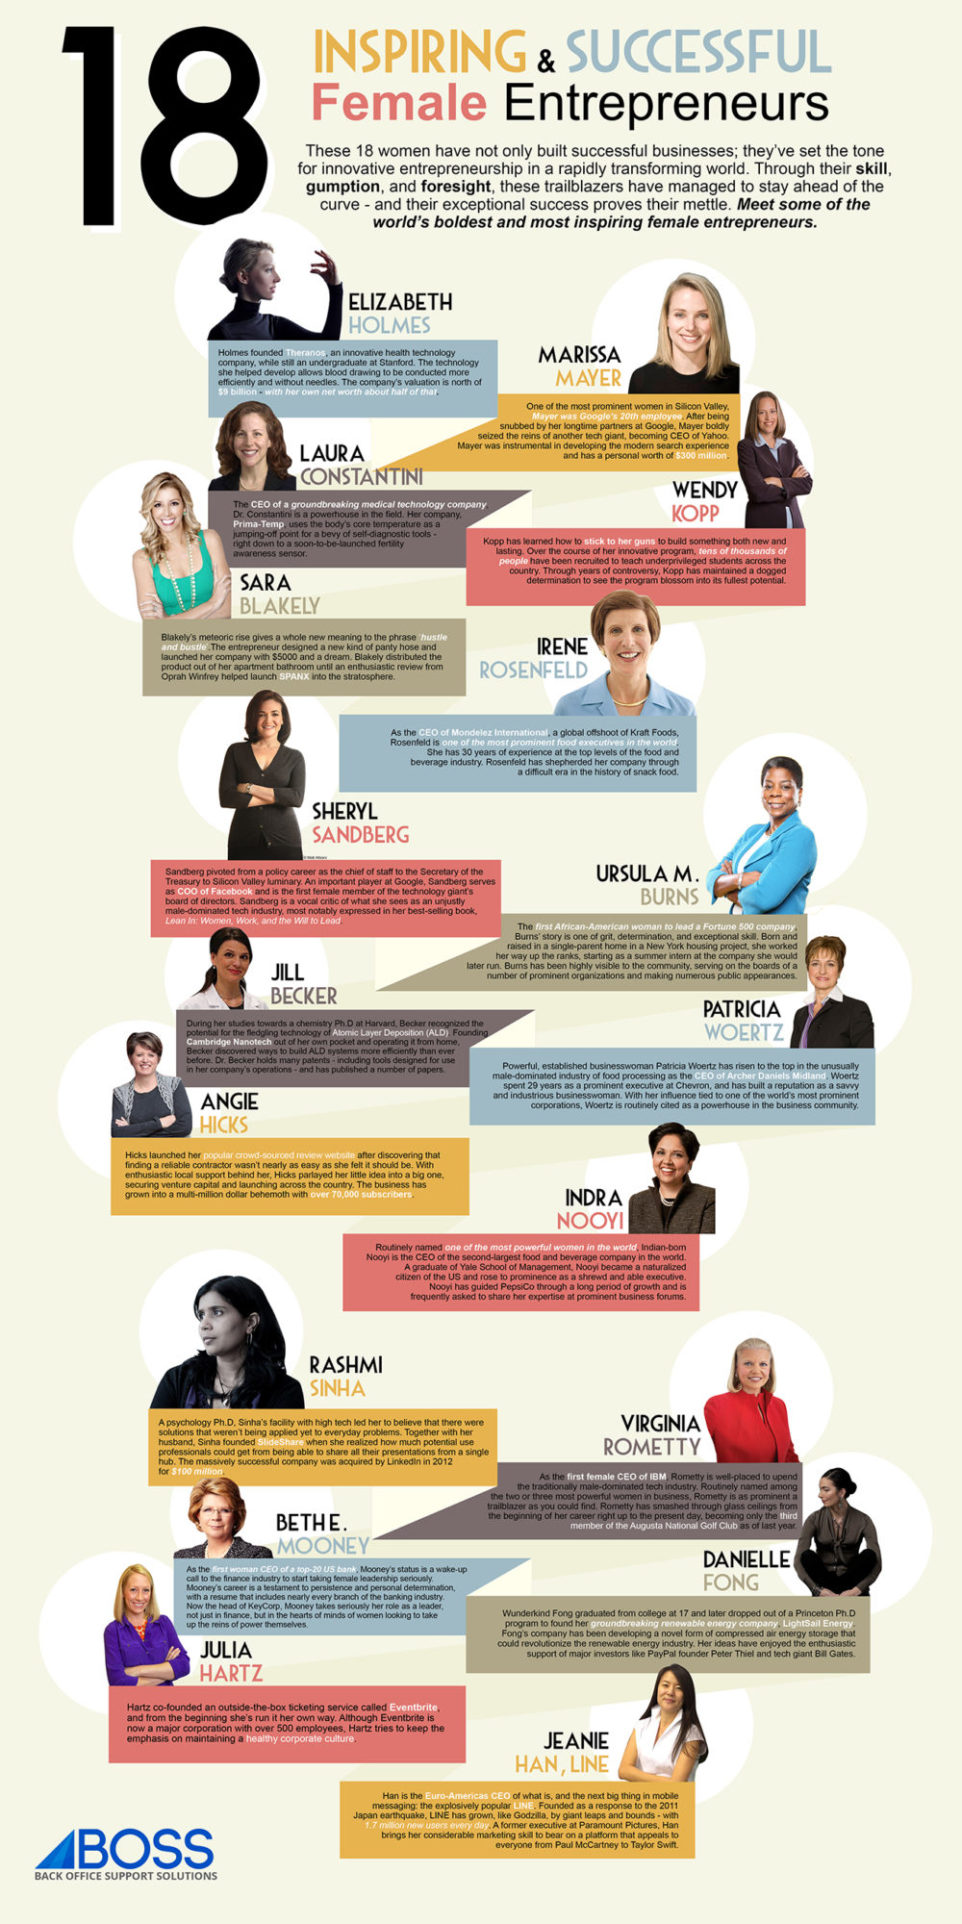 Inspiring and Successful Women in Business